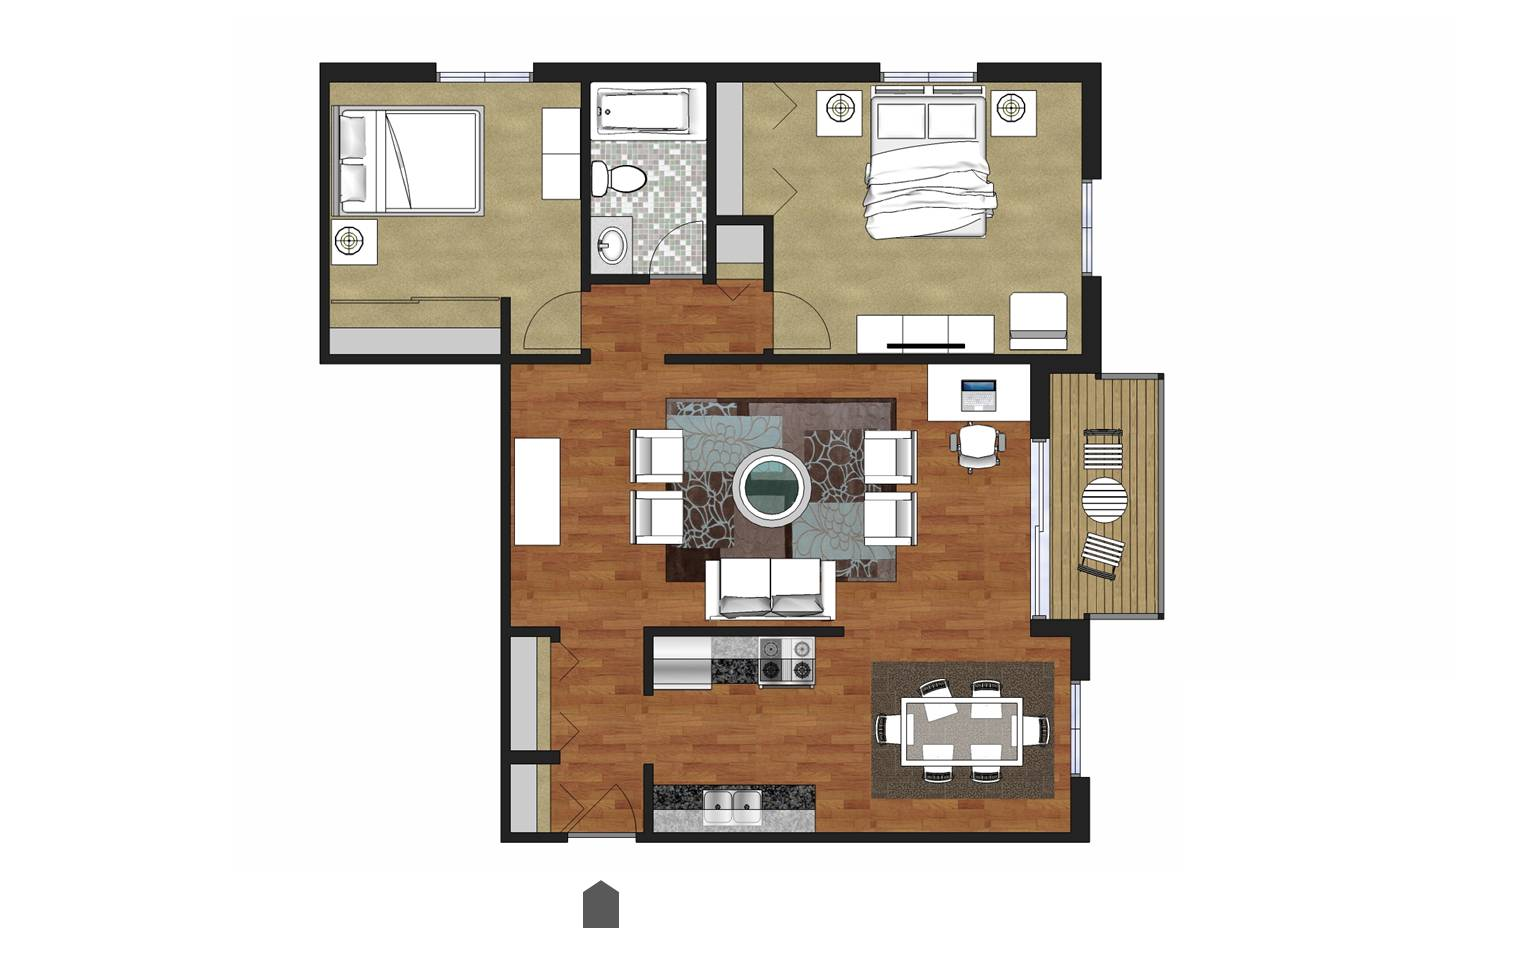 Click image for larger floor plan layout